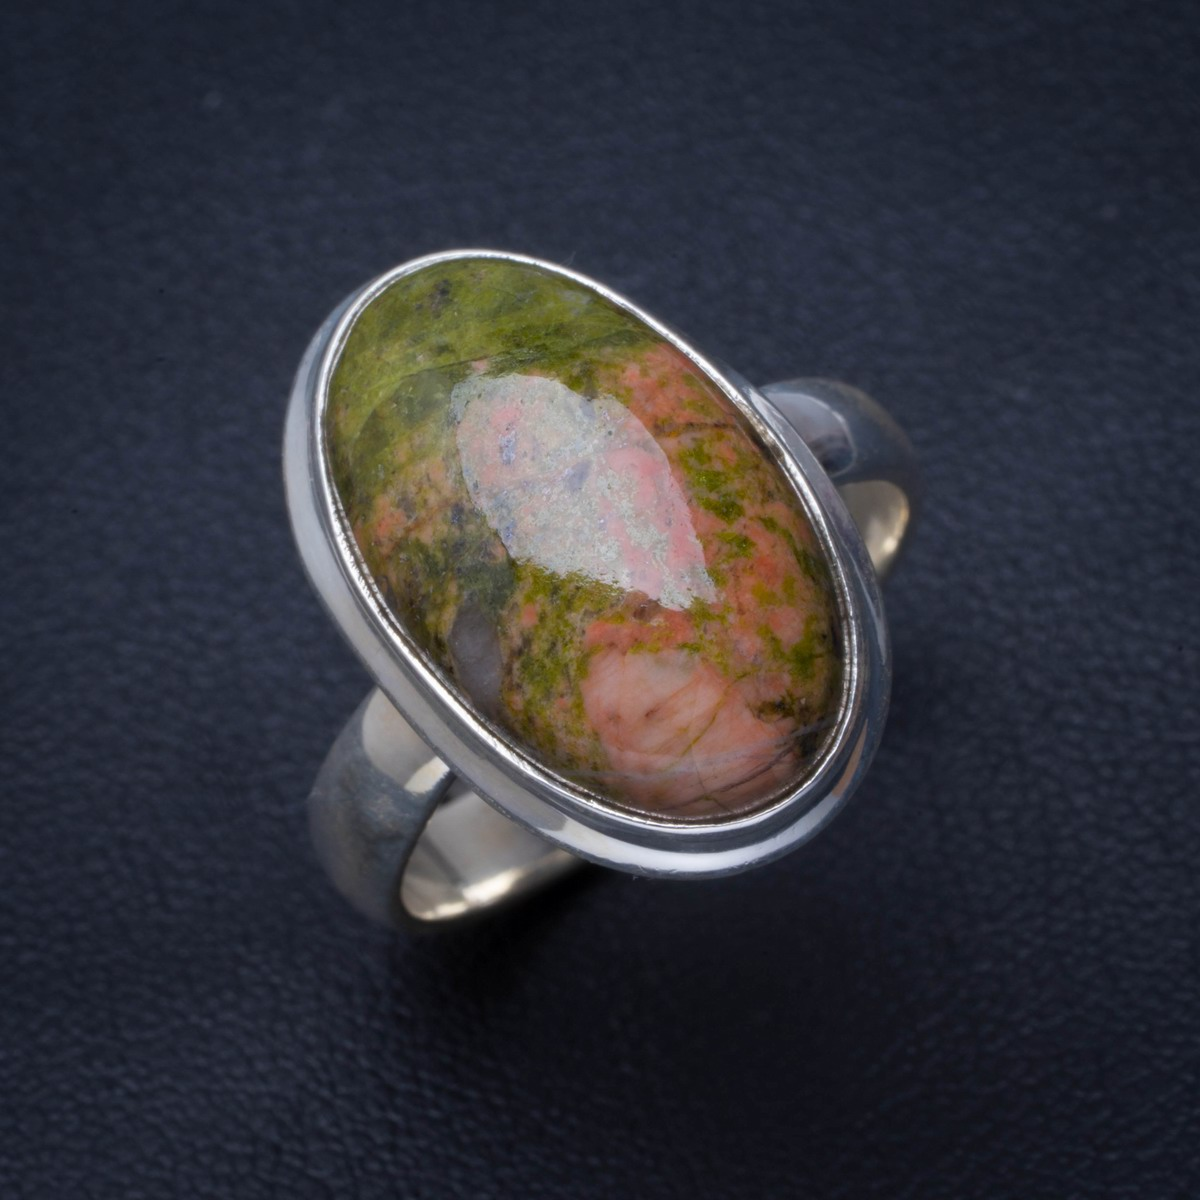 Natural Unakite Handmade Unique 925 Sterling Silver Ring 8.75 B1416Natural Unakite Handmade Unique 925 Sterling Silver Ring 8.75 B1416